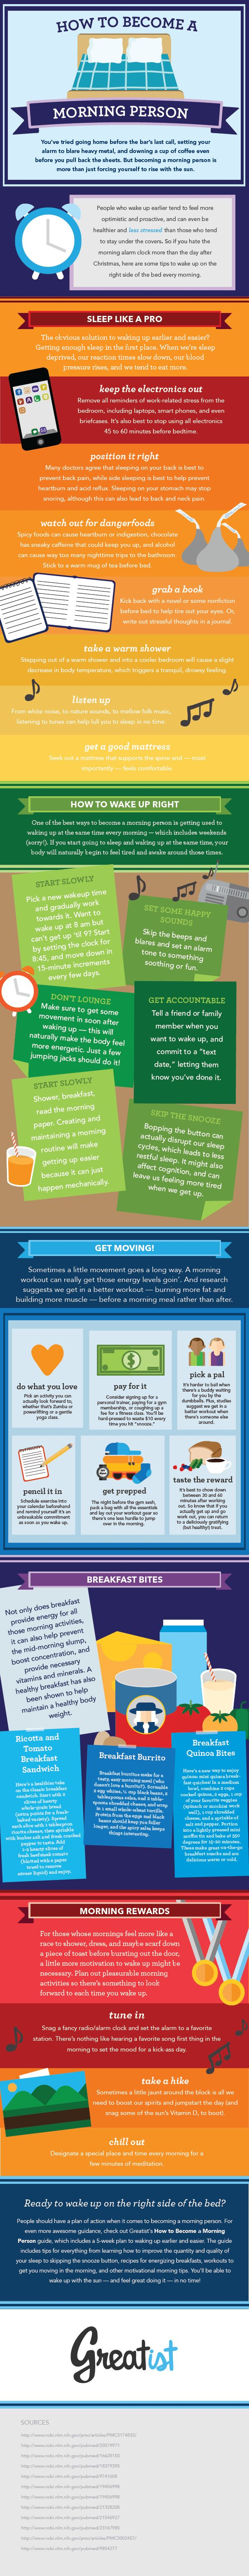 how to become a morning person (infographic)